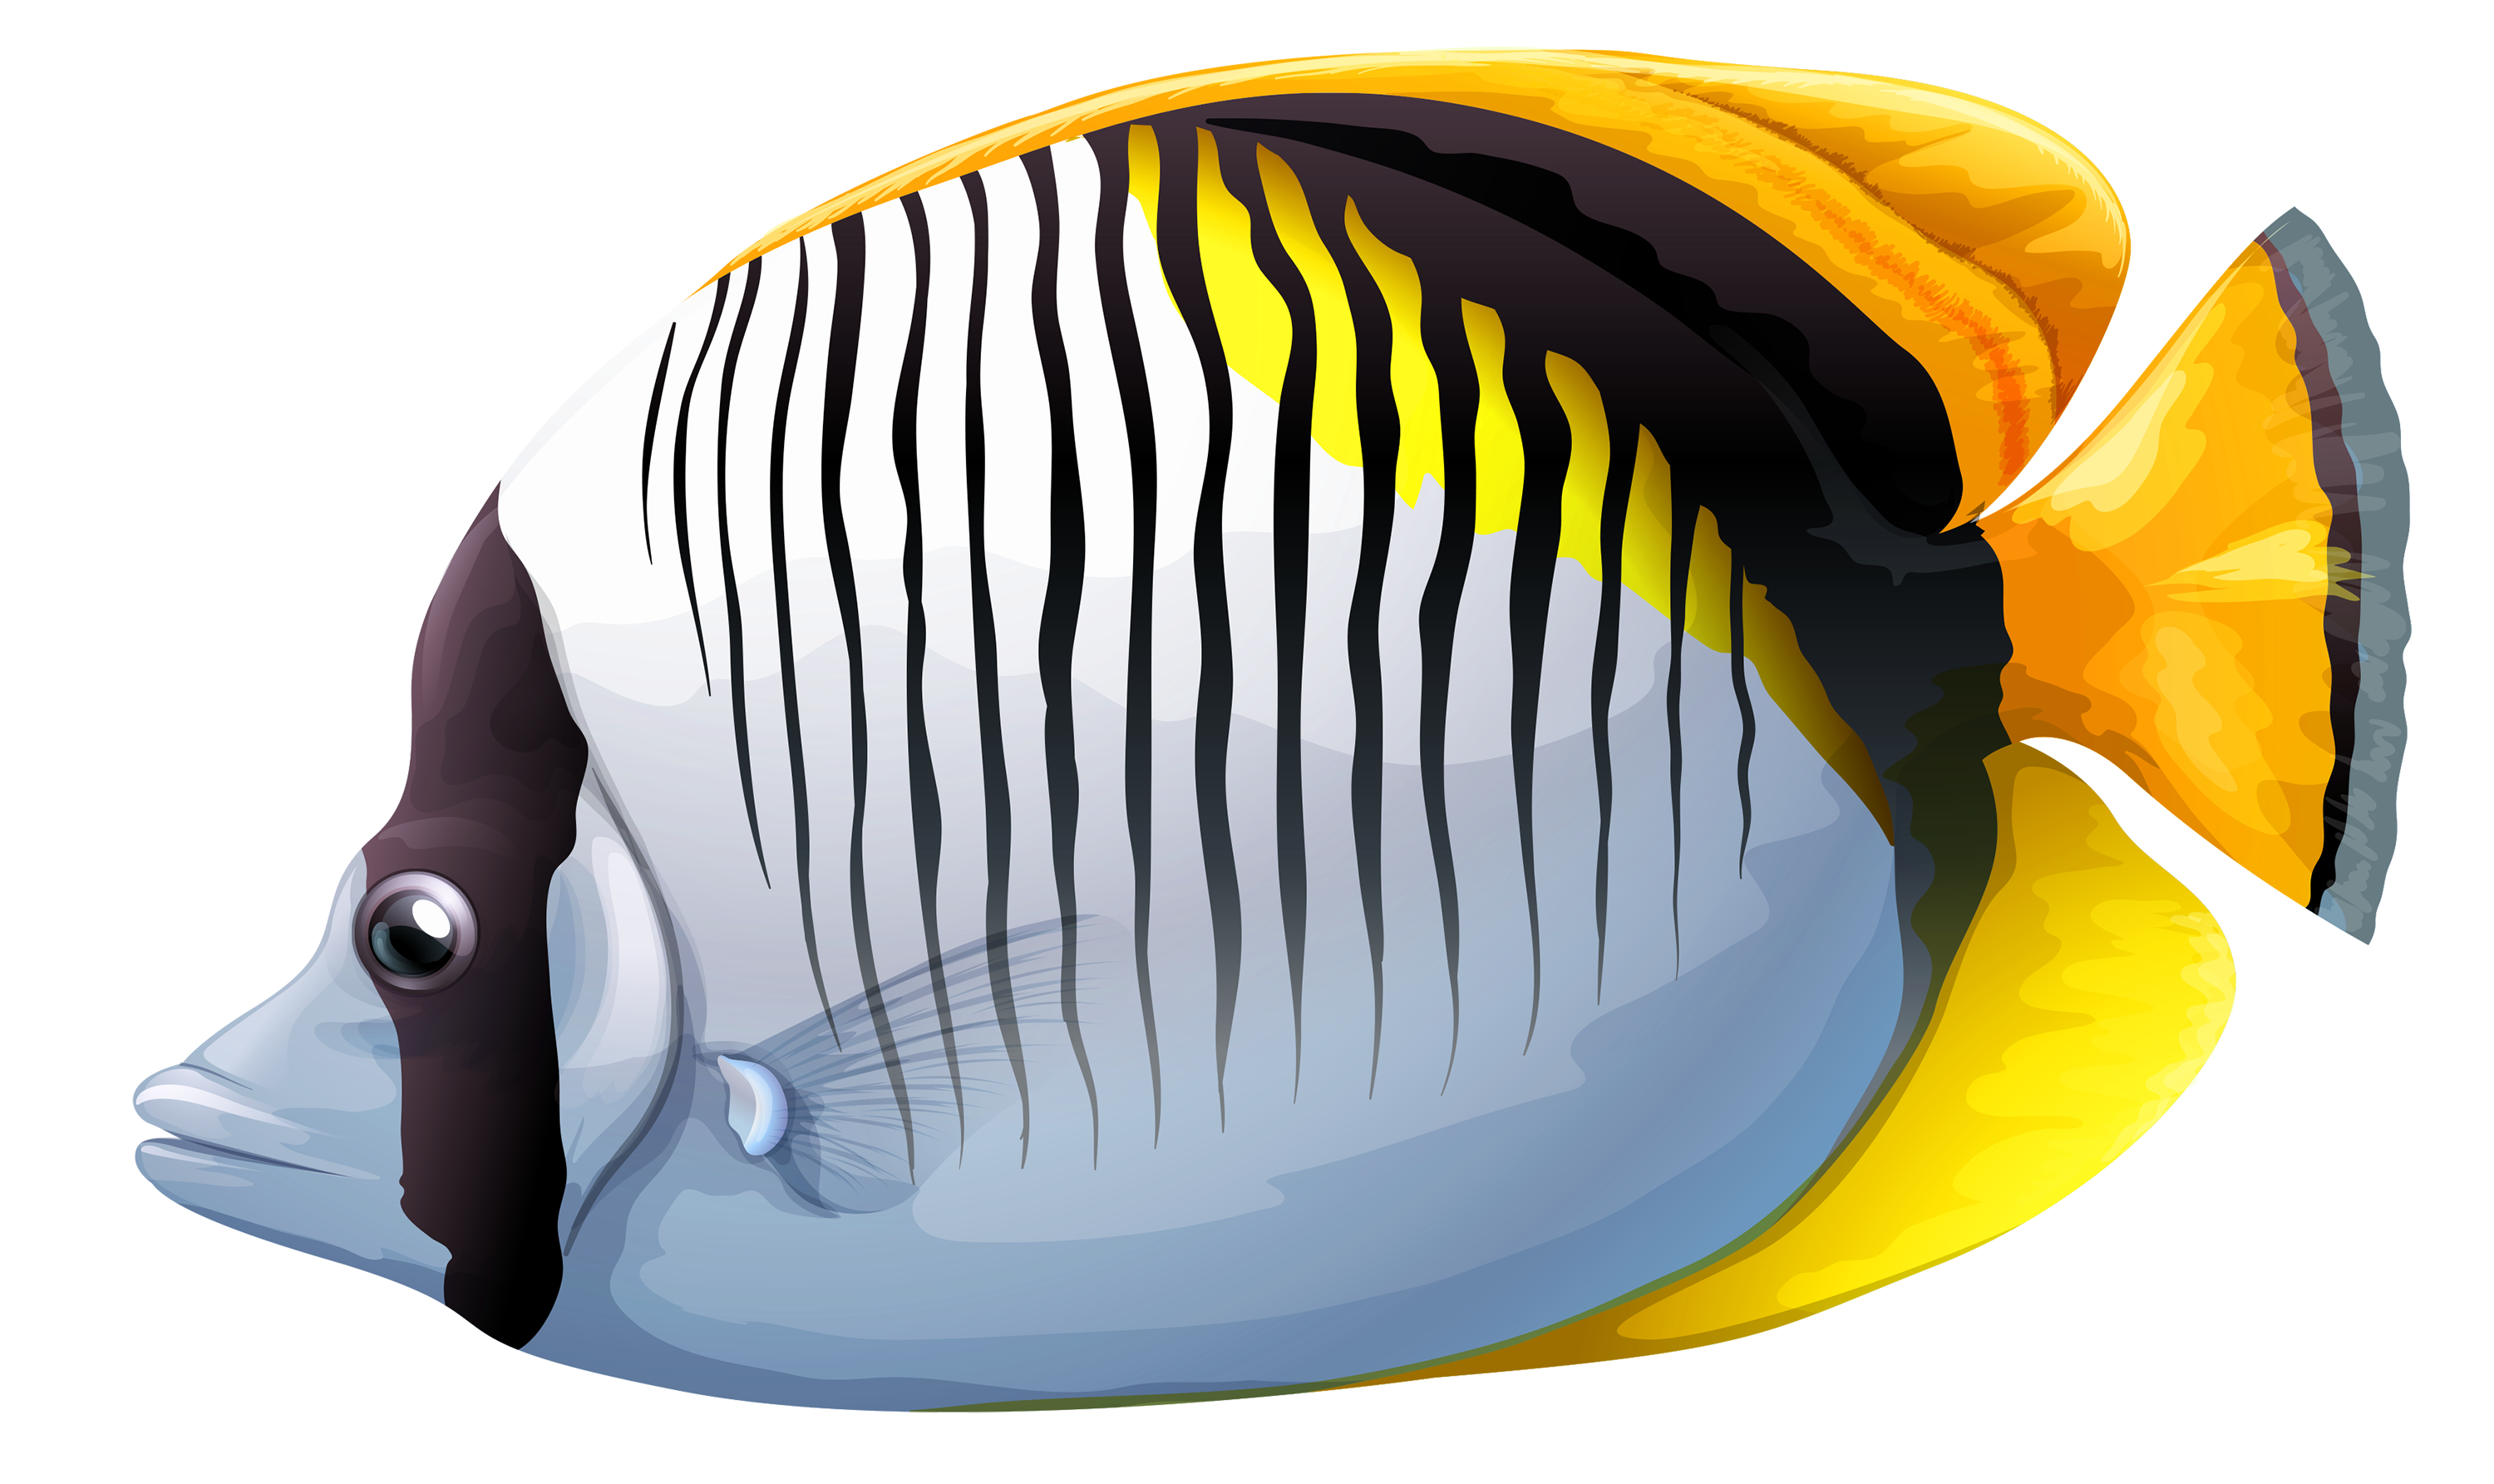 Underwater clipart. Chaetodon fish png image